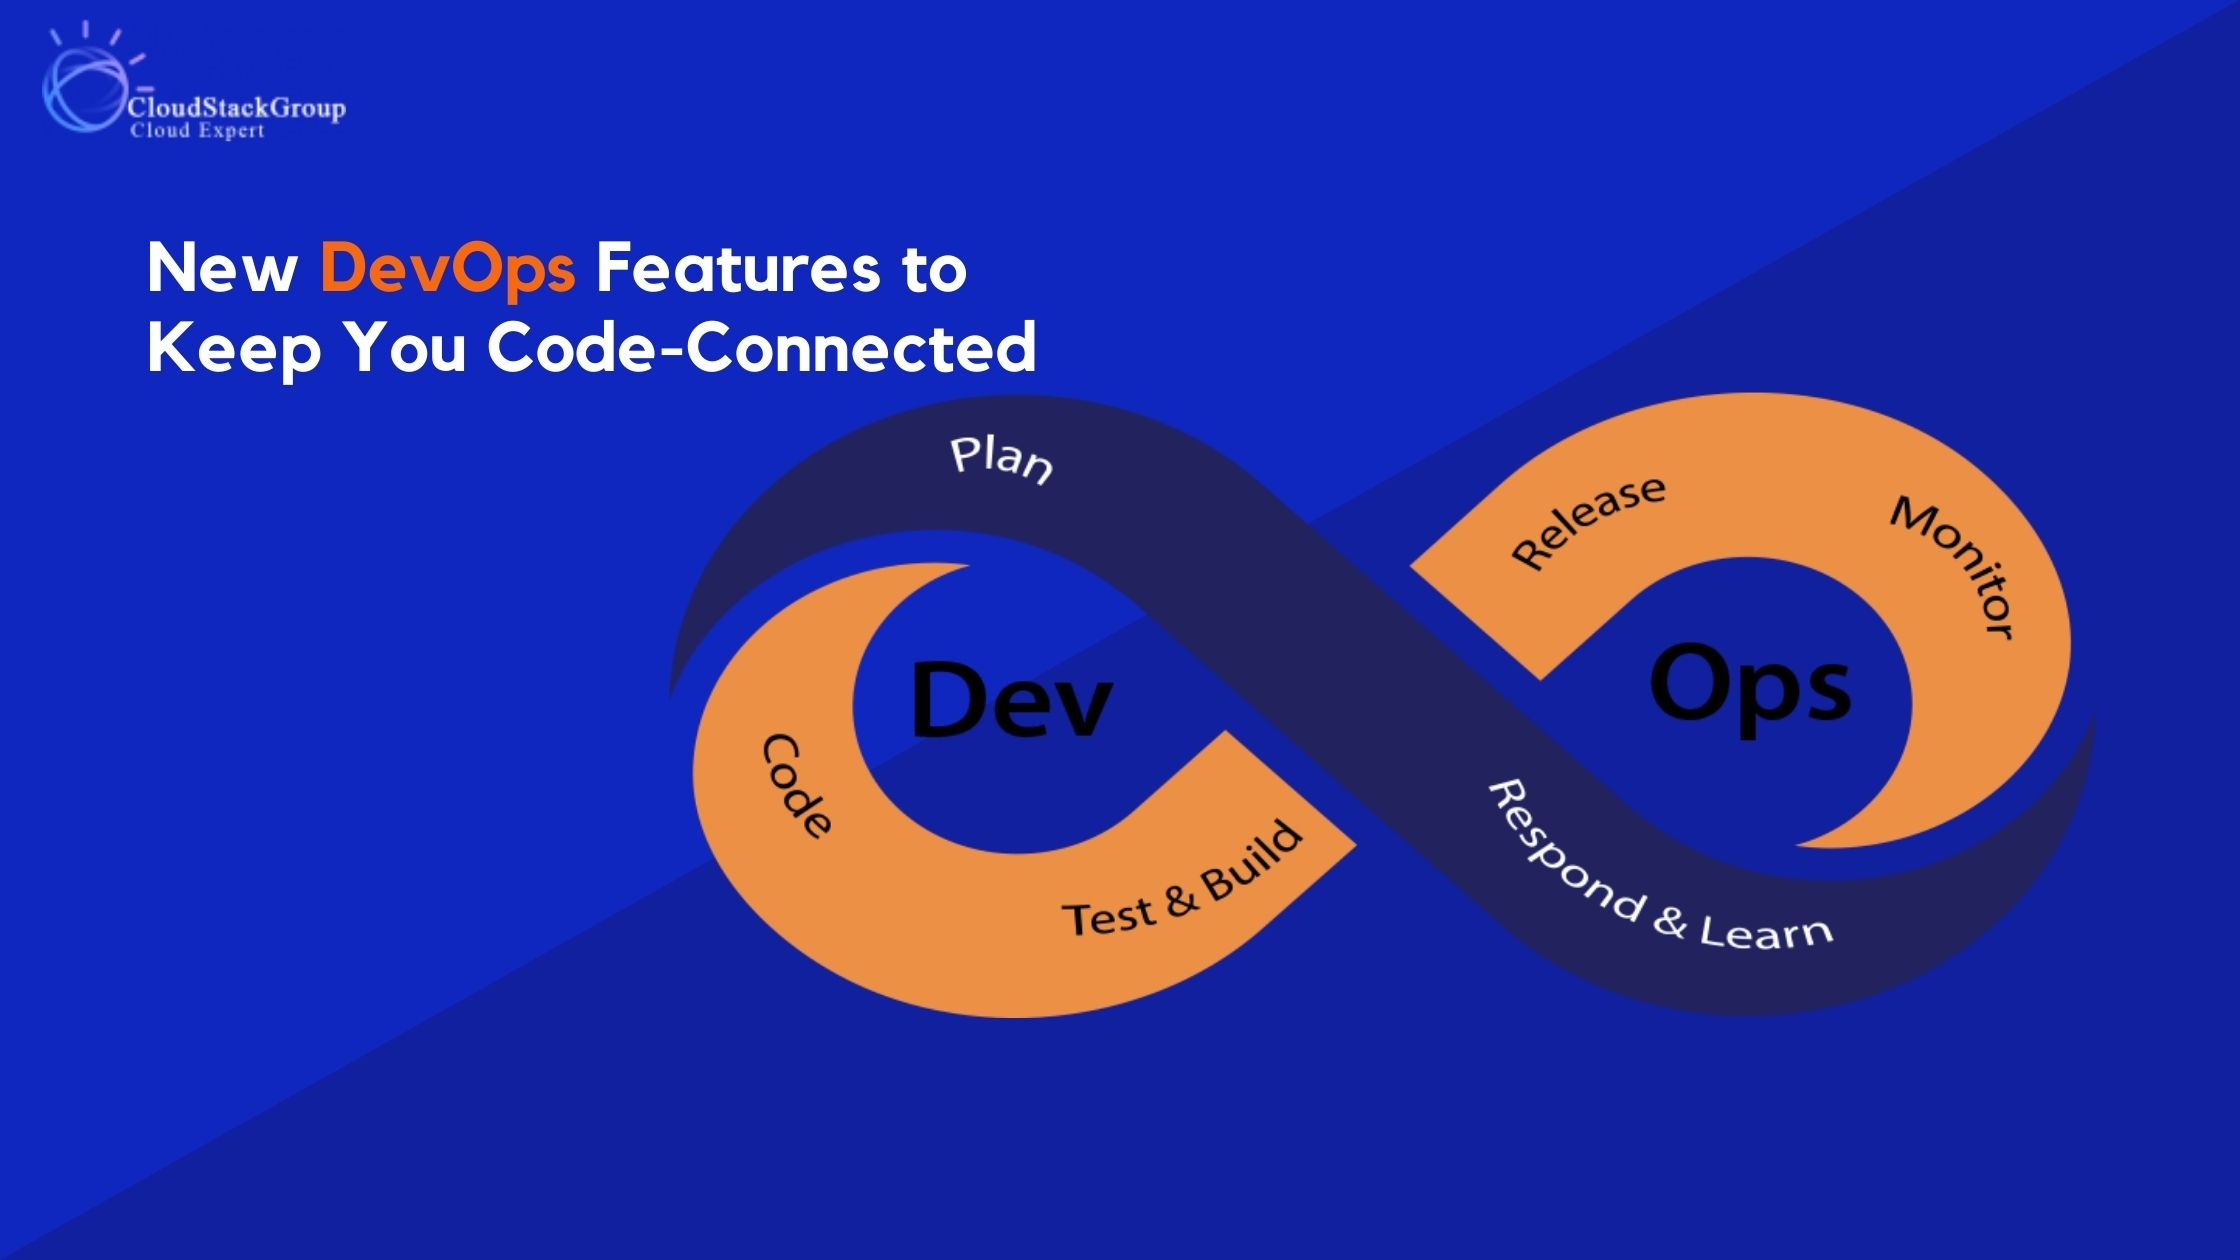 New DevOps Features to Keep You Code-Connected